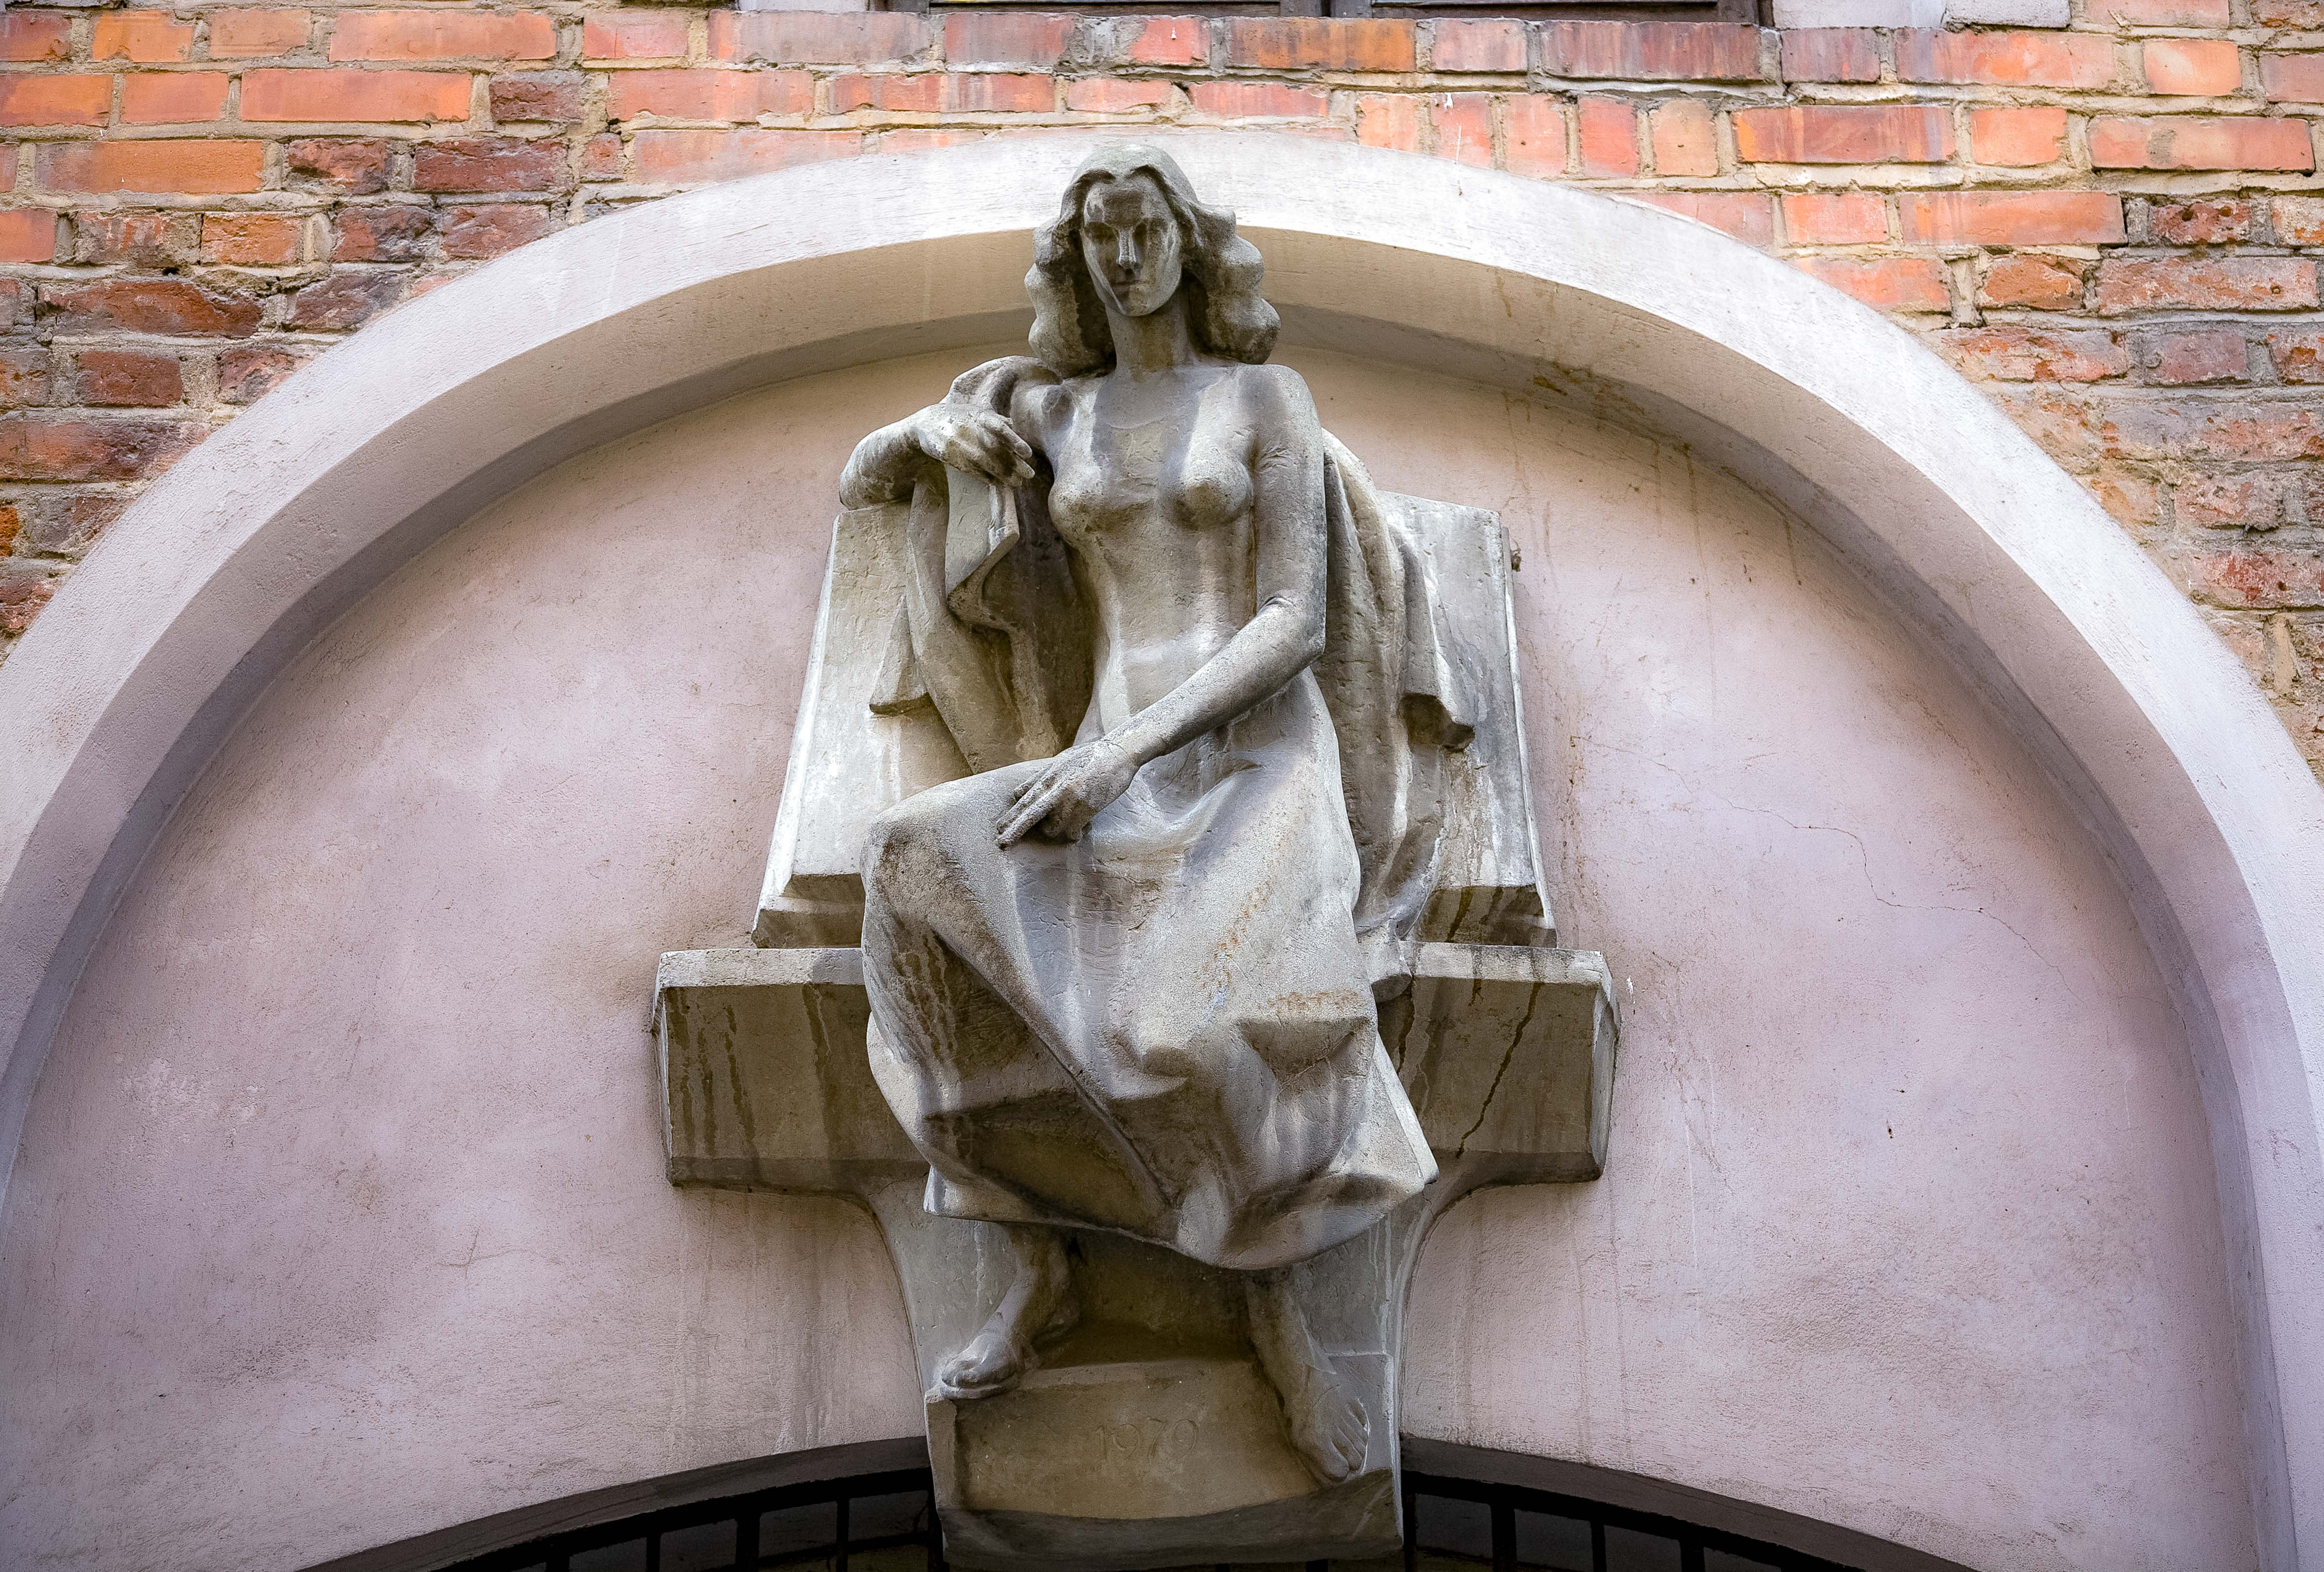 Lithuania, Vilnius, Statuette On Wall, 2010, IMG_3098